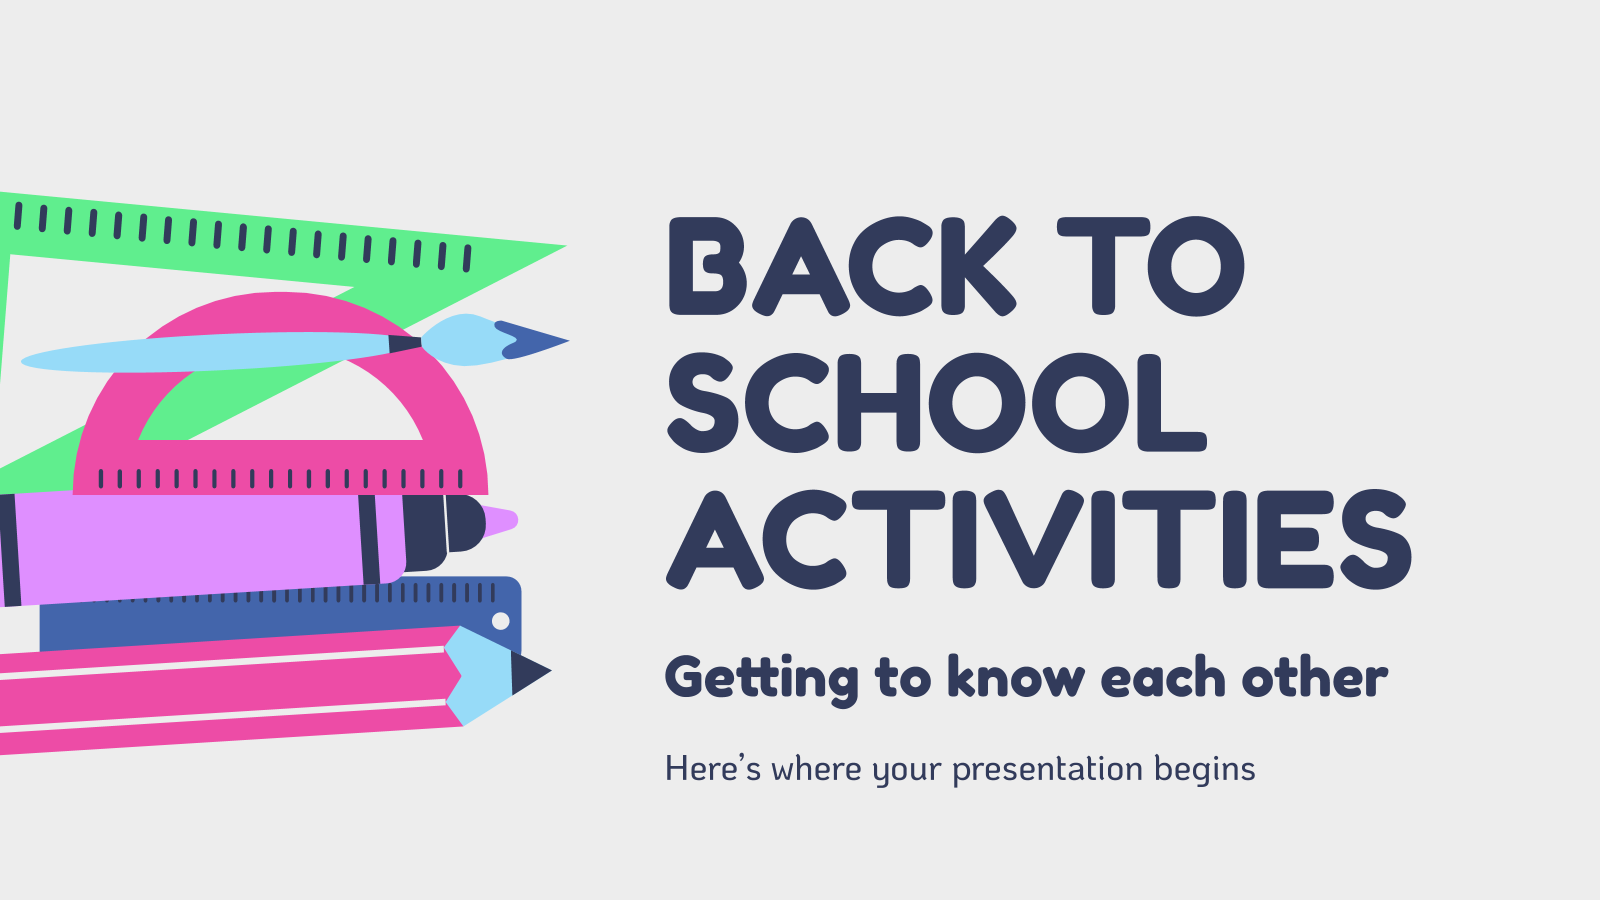 Back to School Activities presentation template